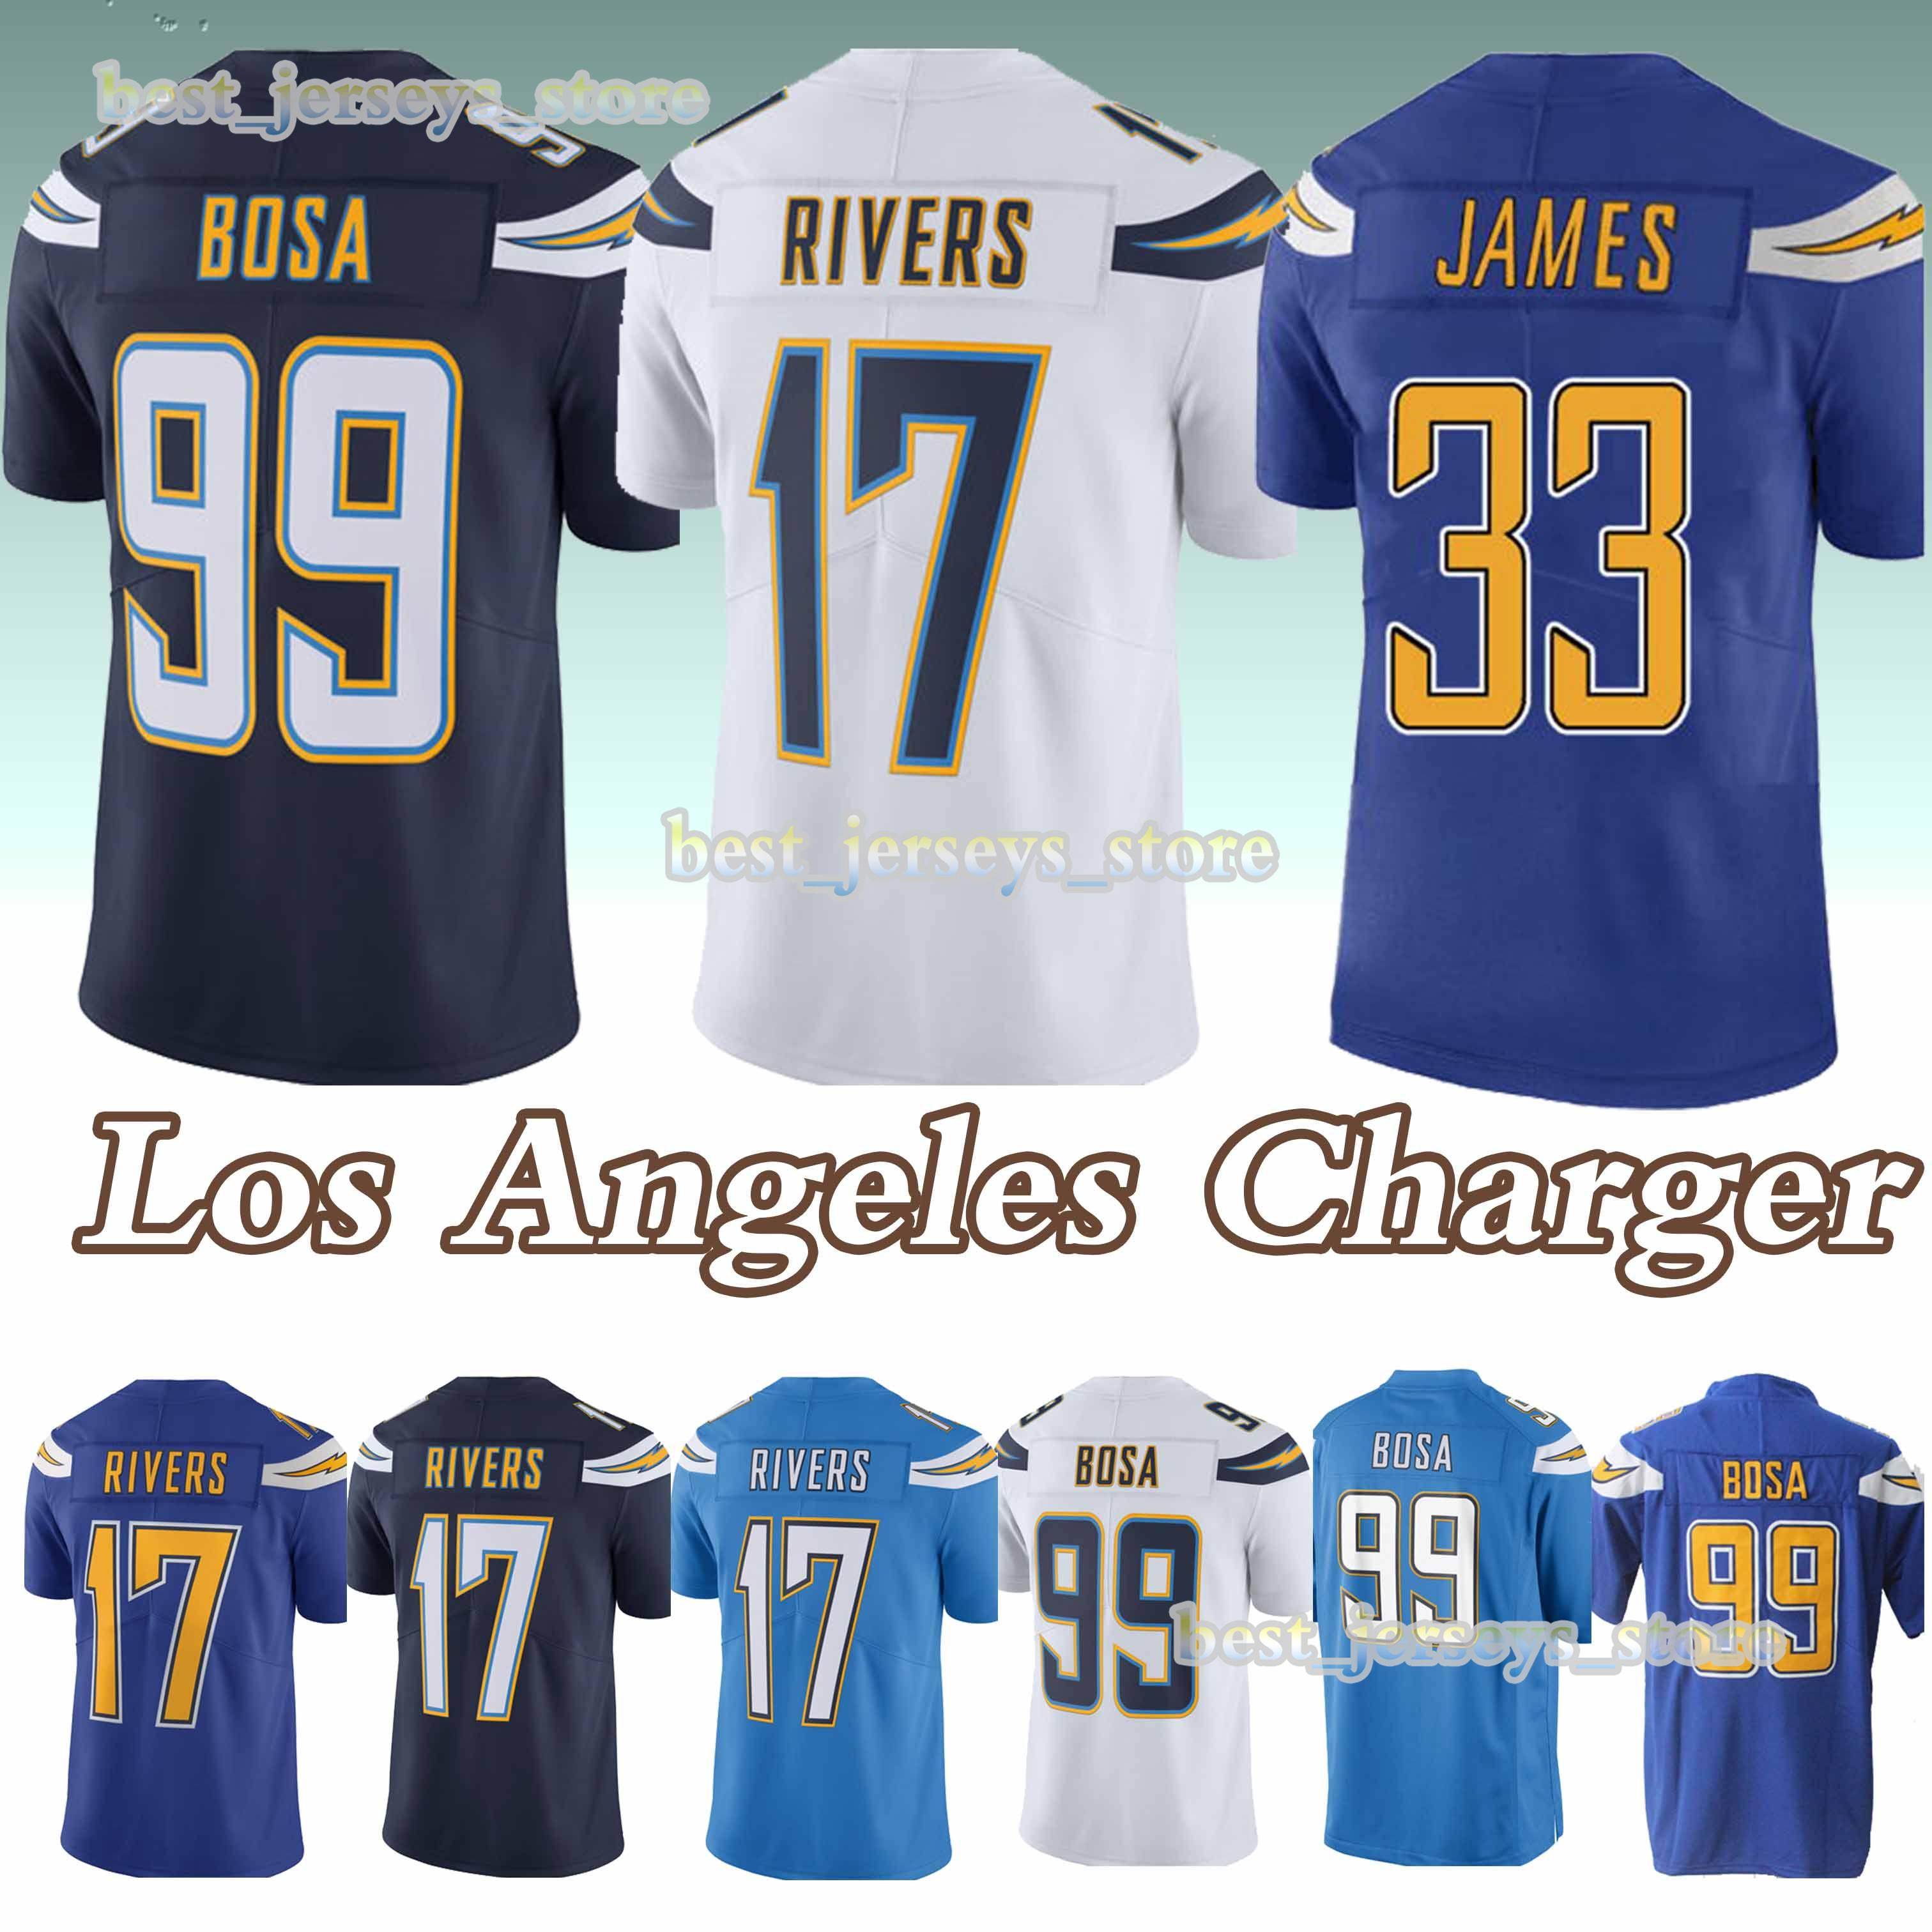 new product f503f f885a 17 Philip Rivers 33 Derwin James Los Angeles jerseys Charger 99 Joey Bosa  new jersey 2019 Design sweater